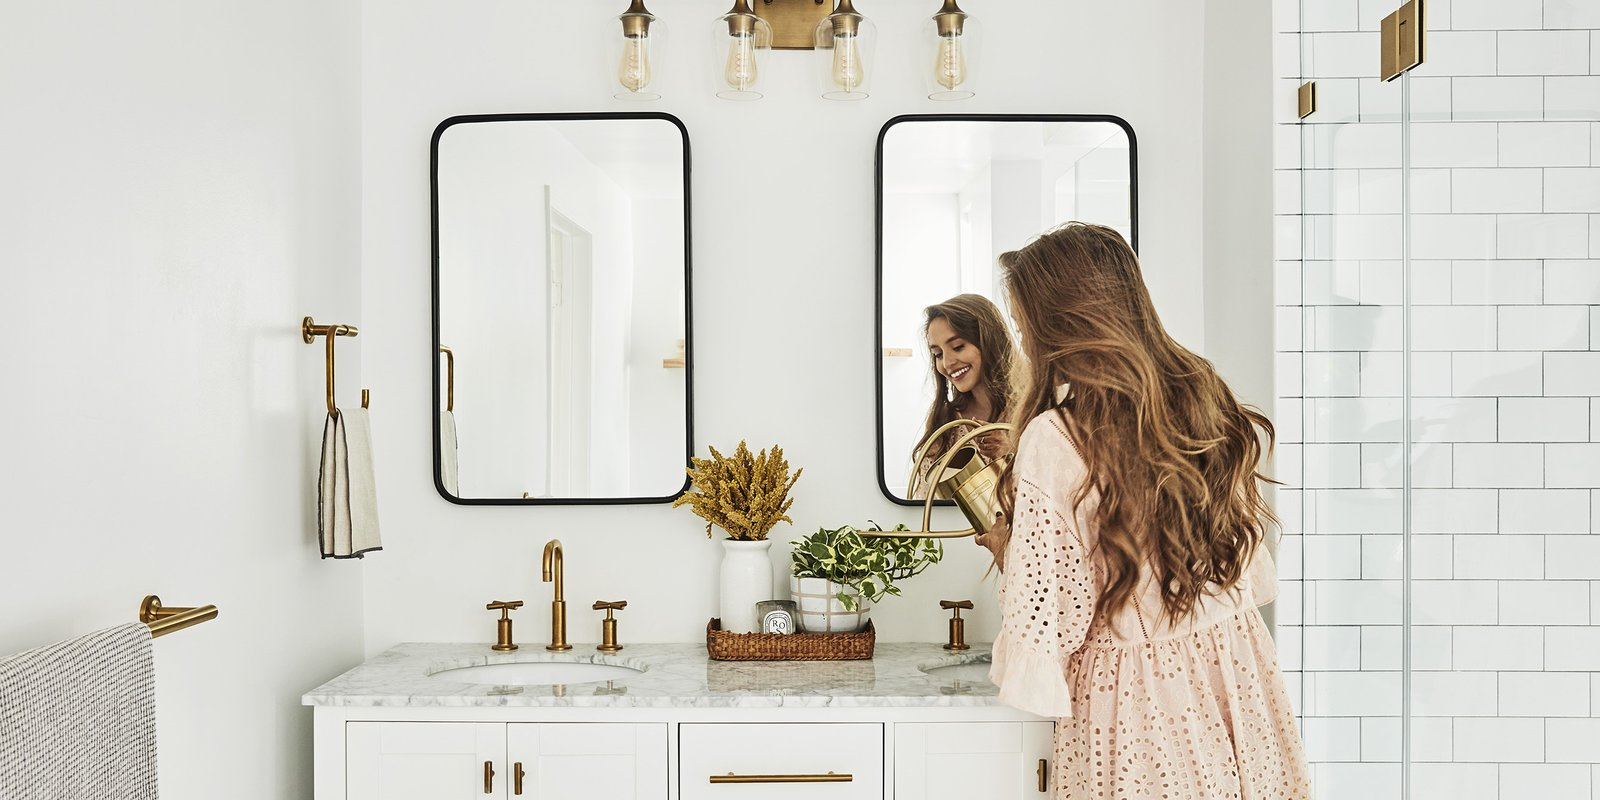 Bathrooms We Love: Beauty Vlogger Kristin Johns Showcases Her Glistening Bathroom in Los Angeles